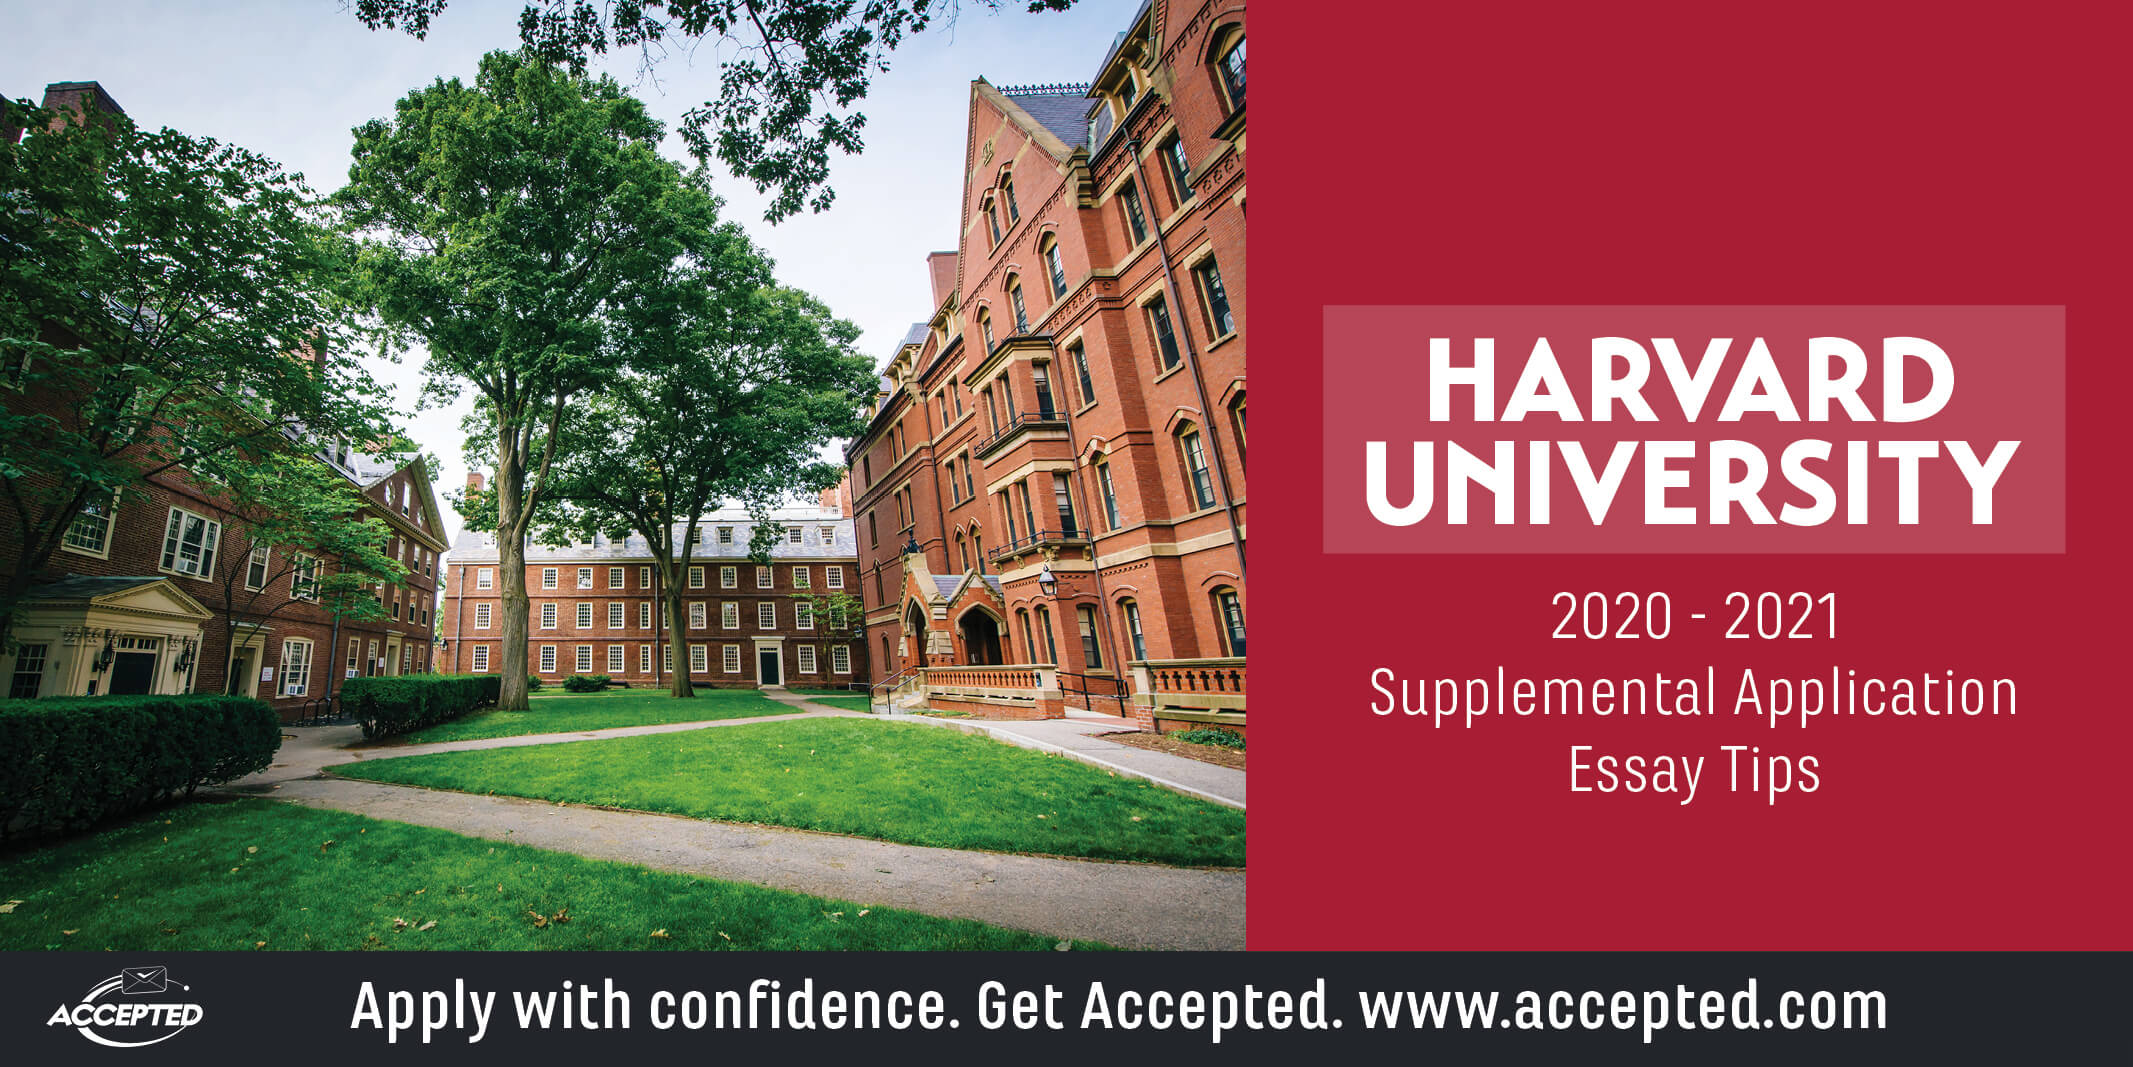 Full Size of Tips For Answering The Harvard Supplemental Essay Prompts Accepted Essays University 2021